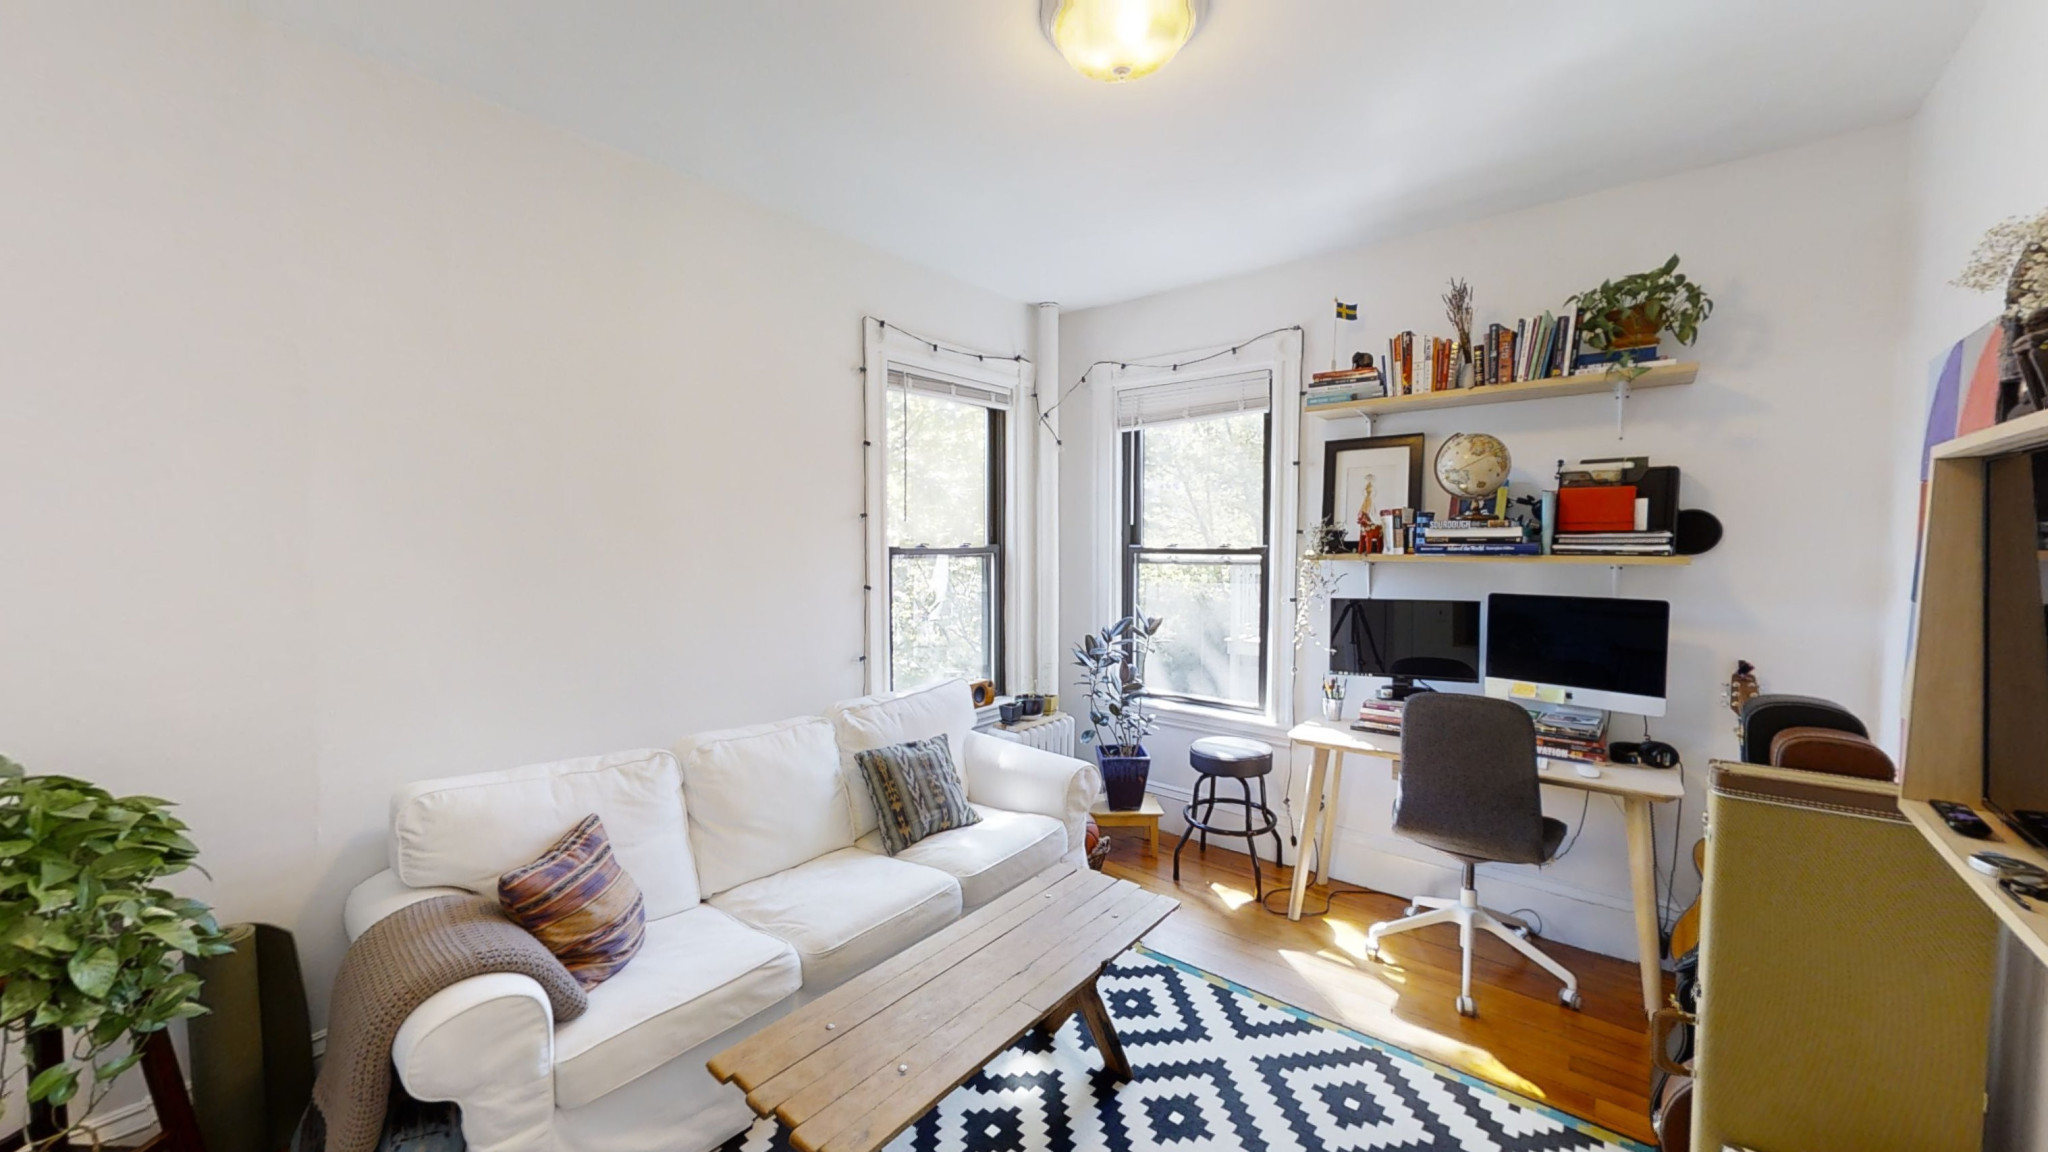 1 Bed, 1 Bath apartment in Somerville for $1,663